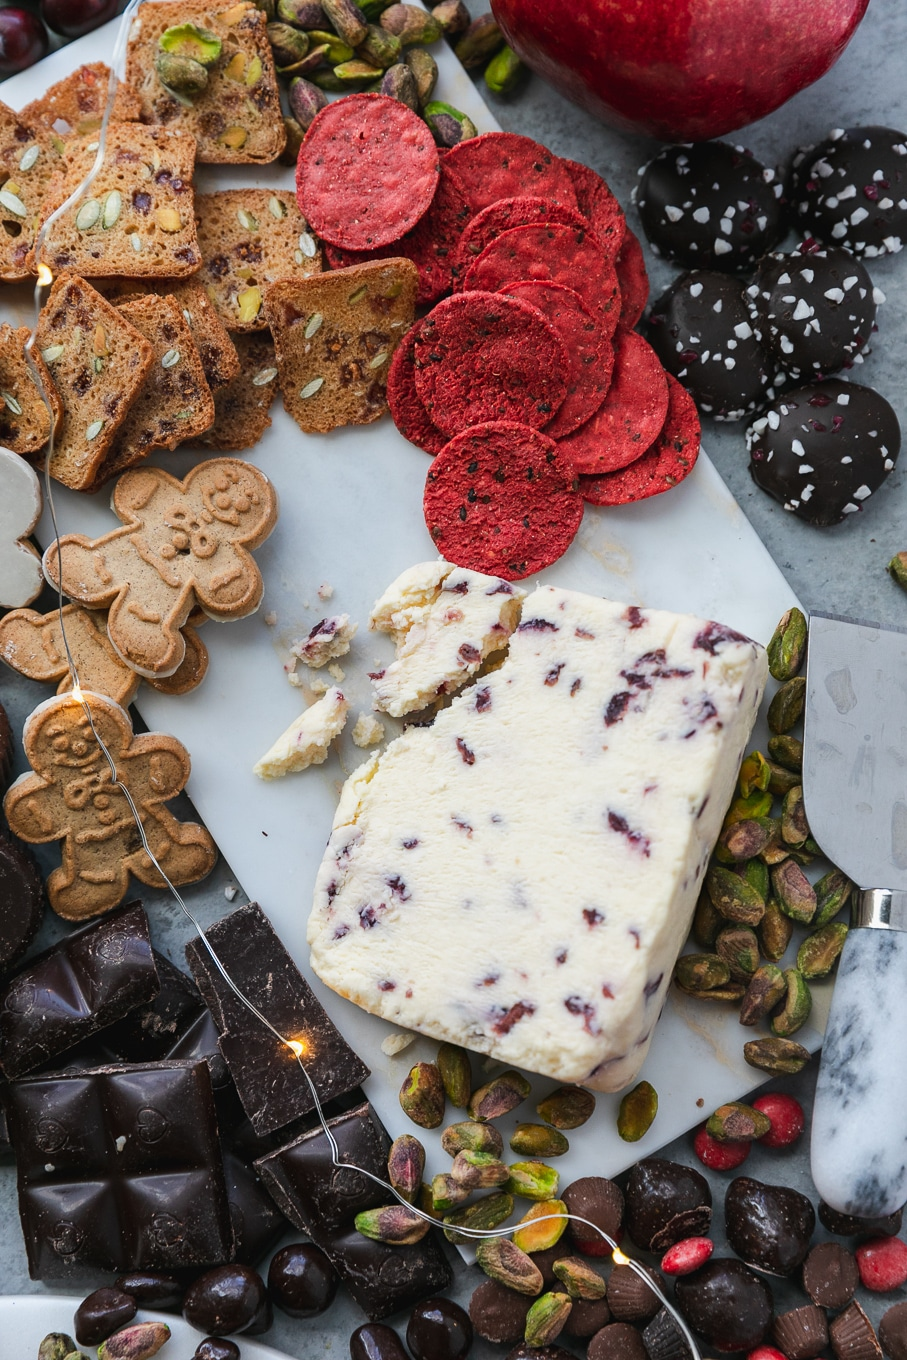 Overhead shot of a cranberry cheese surrounded by red crackers, gingerbread men, pistachios, peppermint chocolate candies, and a dark chocolate bar